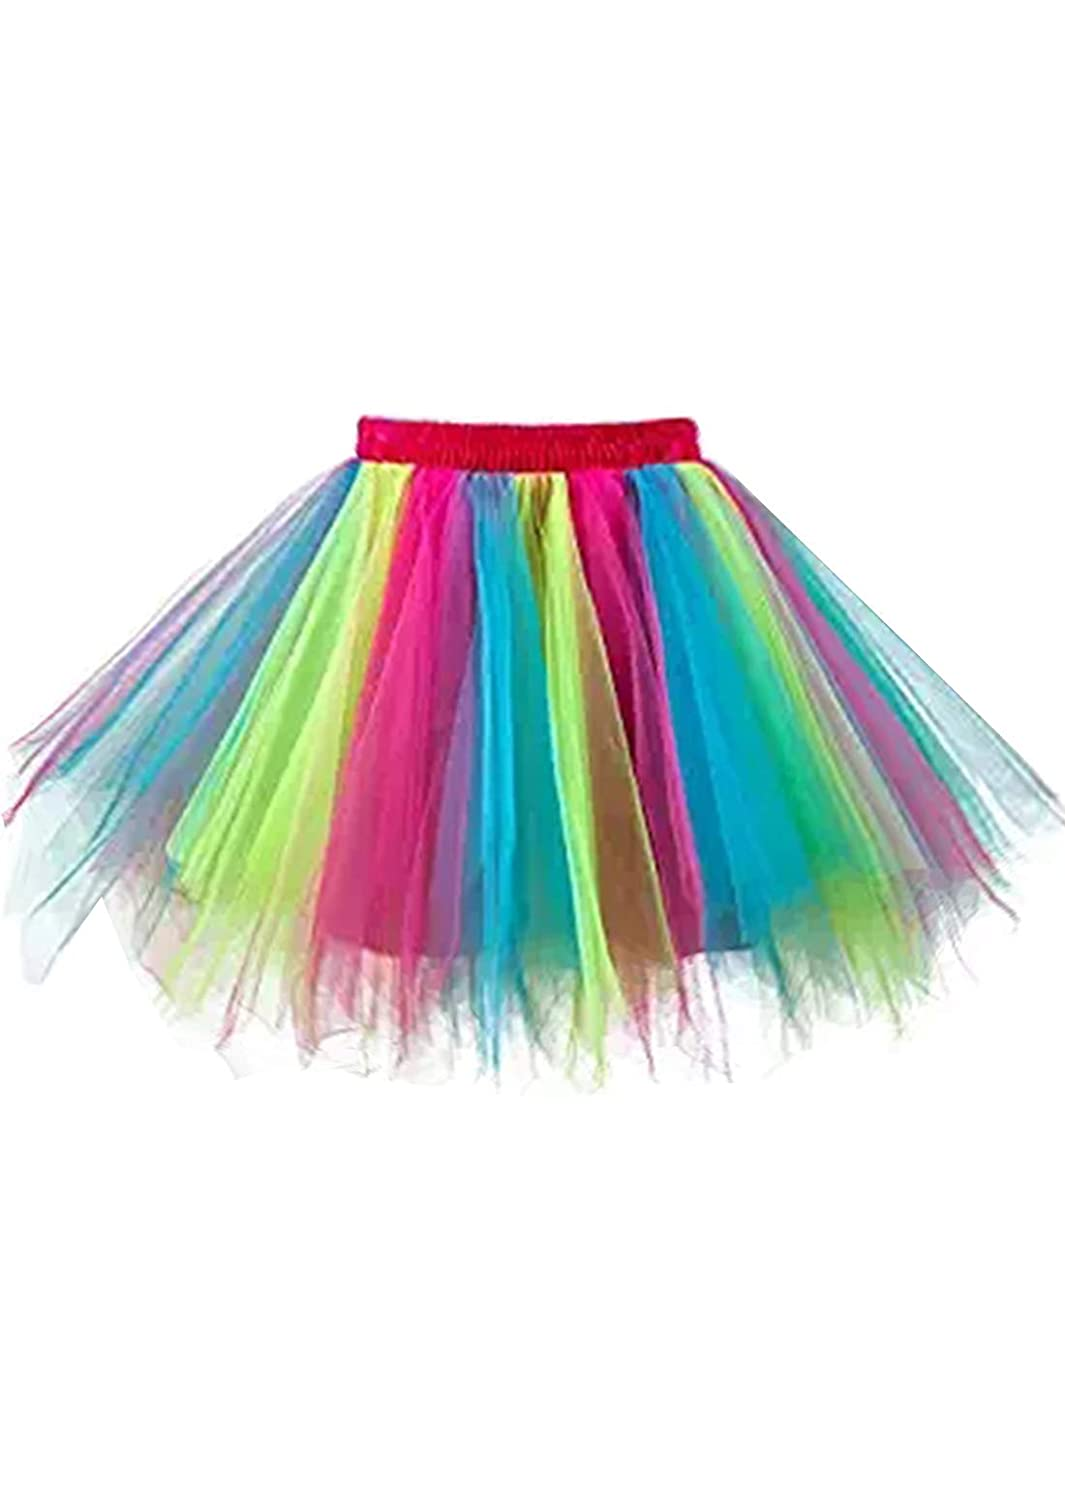 Rainbow malishow Womens Short Tutu Costume Tulle Skirt Dance Multicolord Party Petticoat